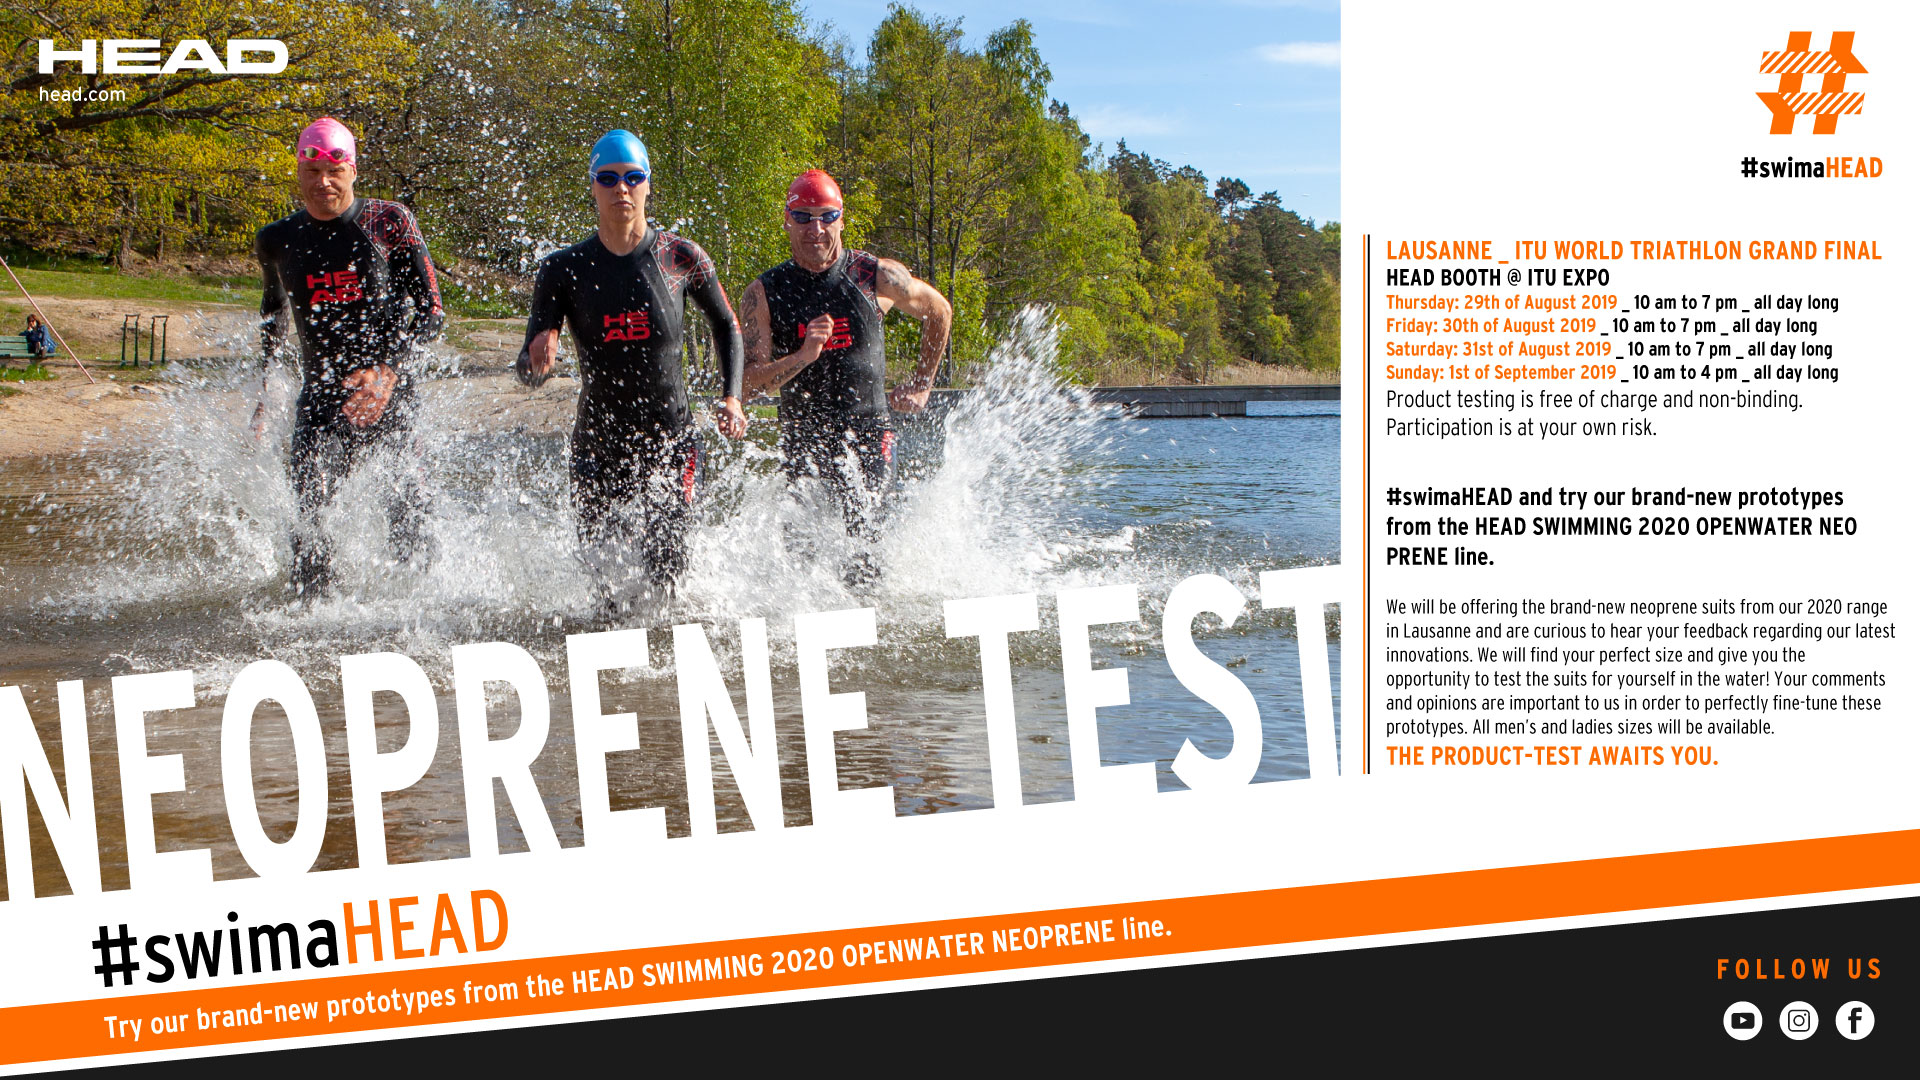 Try the brand-new prototypes from the HEAD Swimming 2020 Openwater Neoprene line!